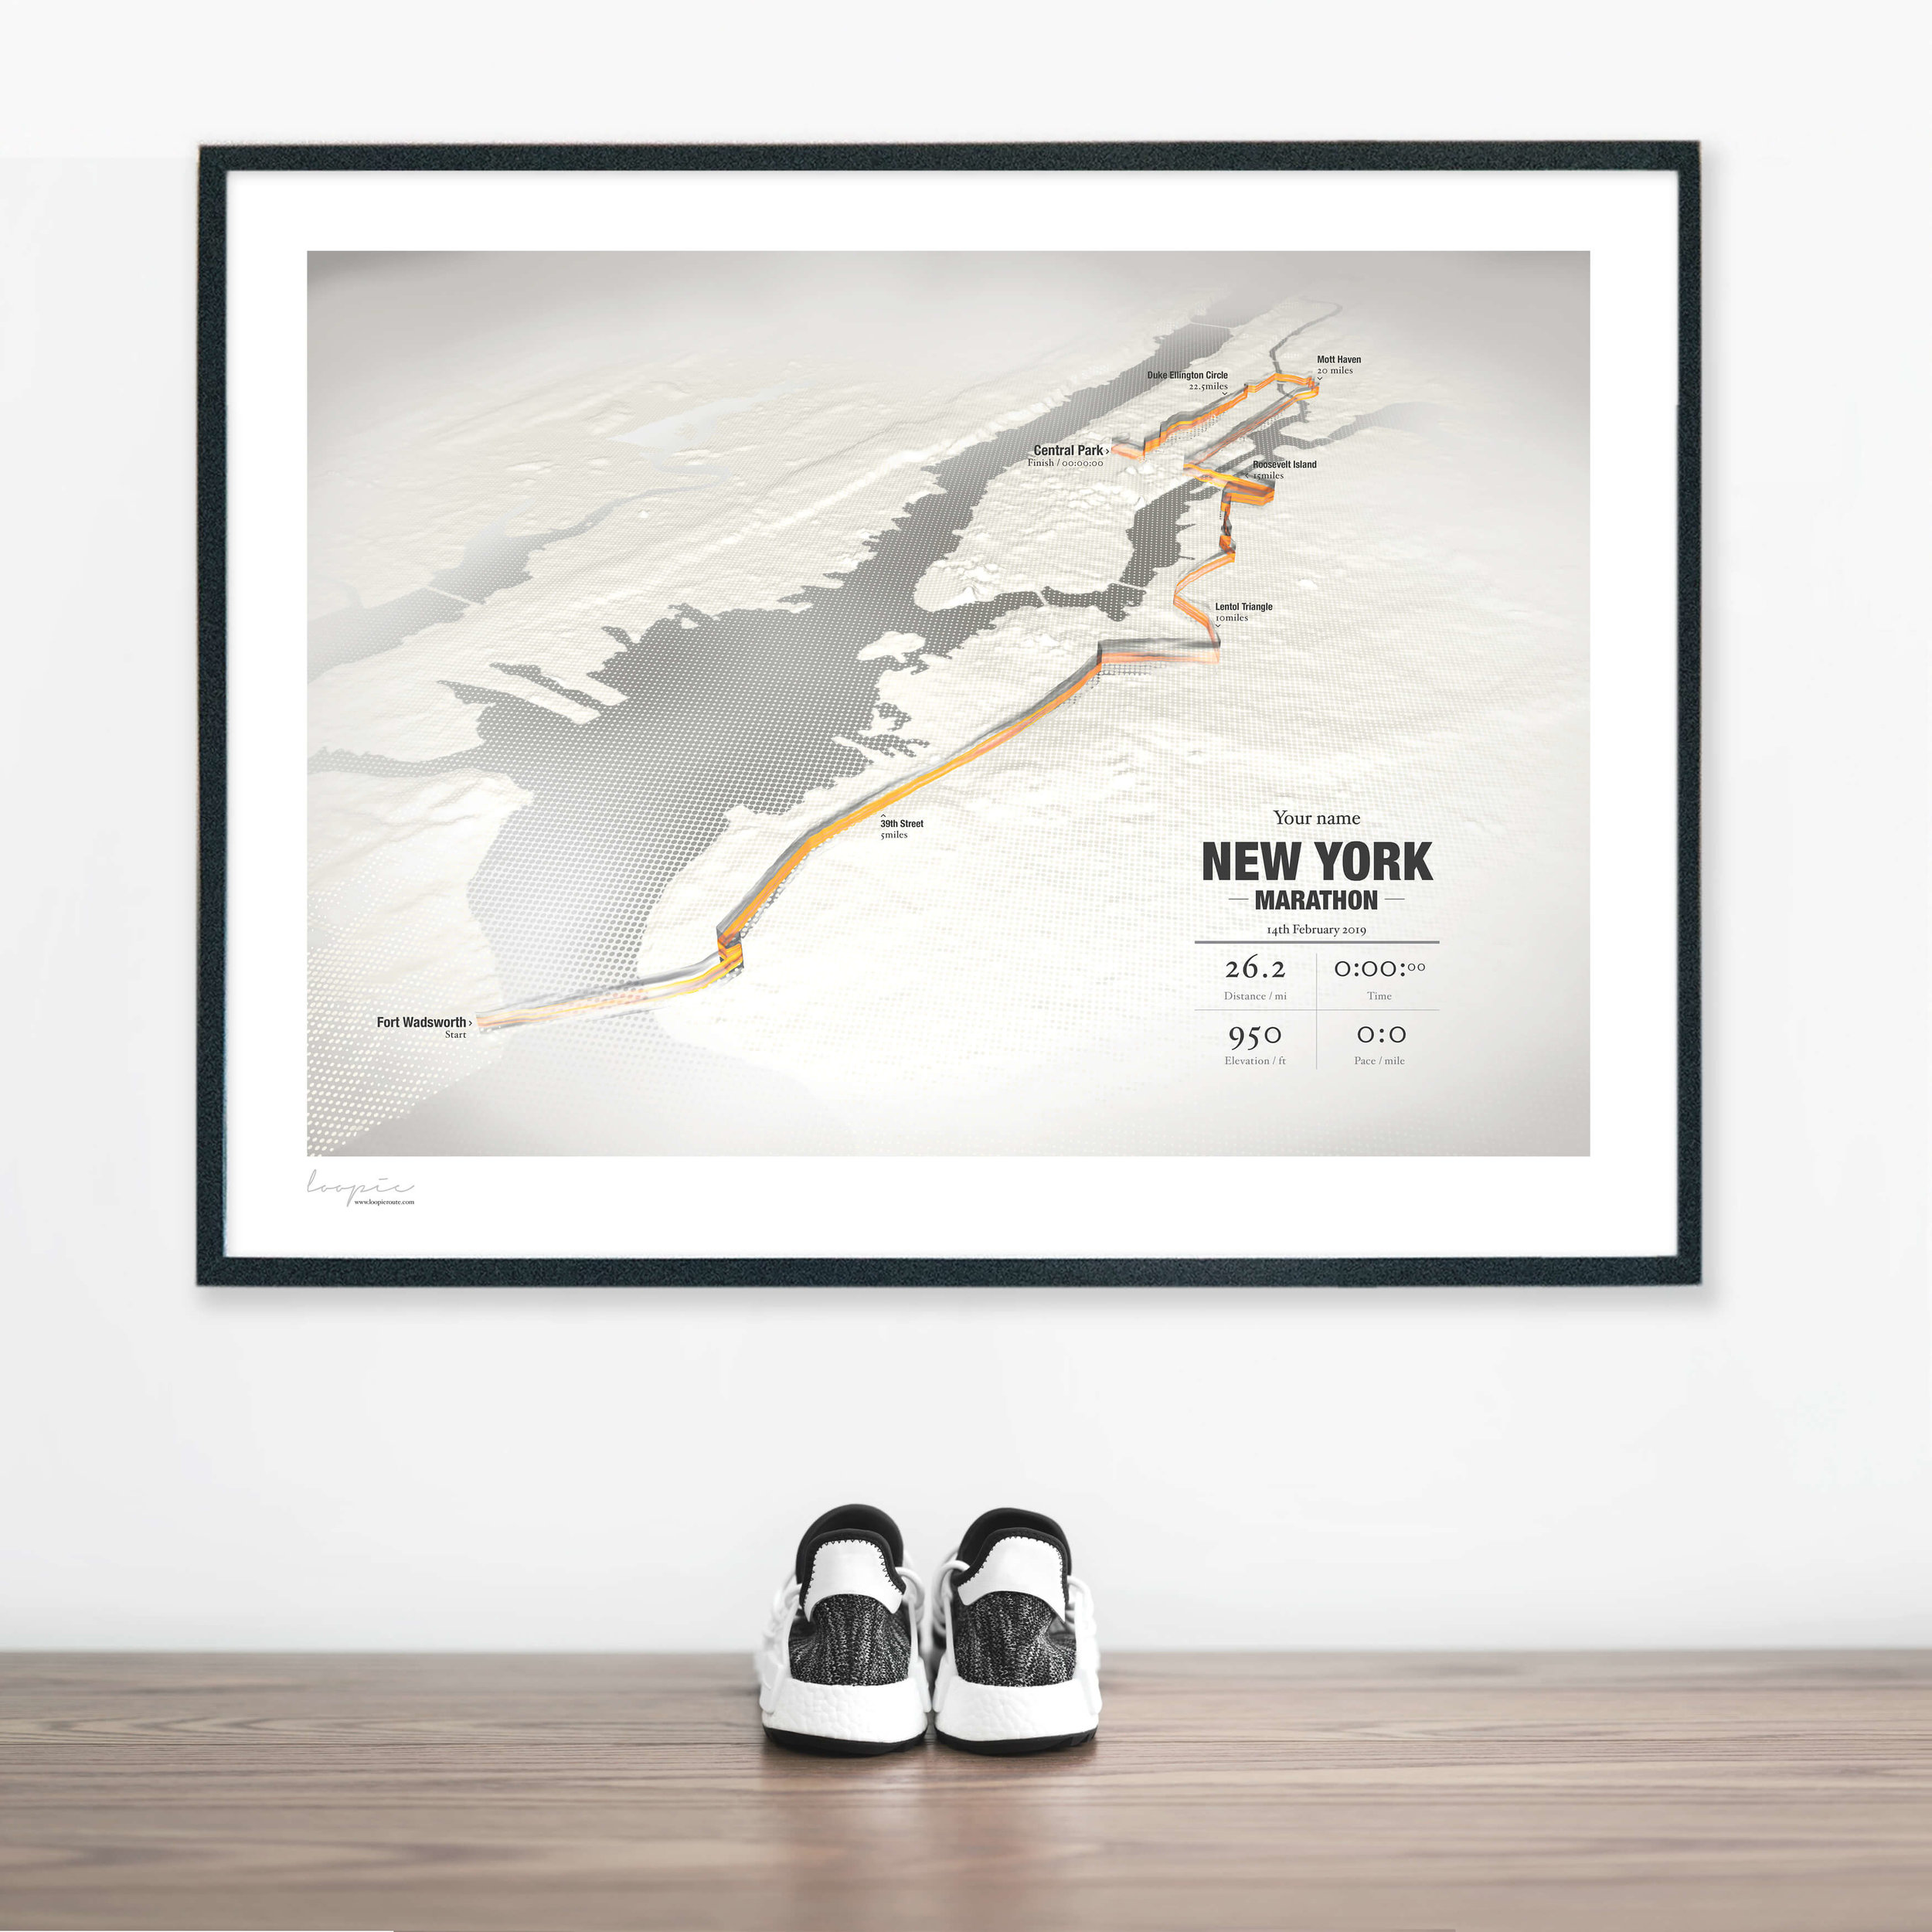 New YorkMarathon - A unique image personalised with your name and finishing time.